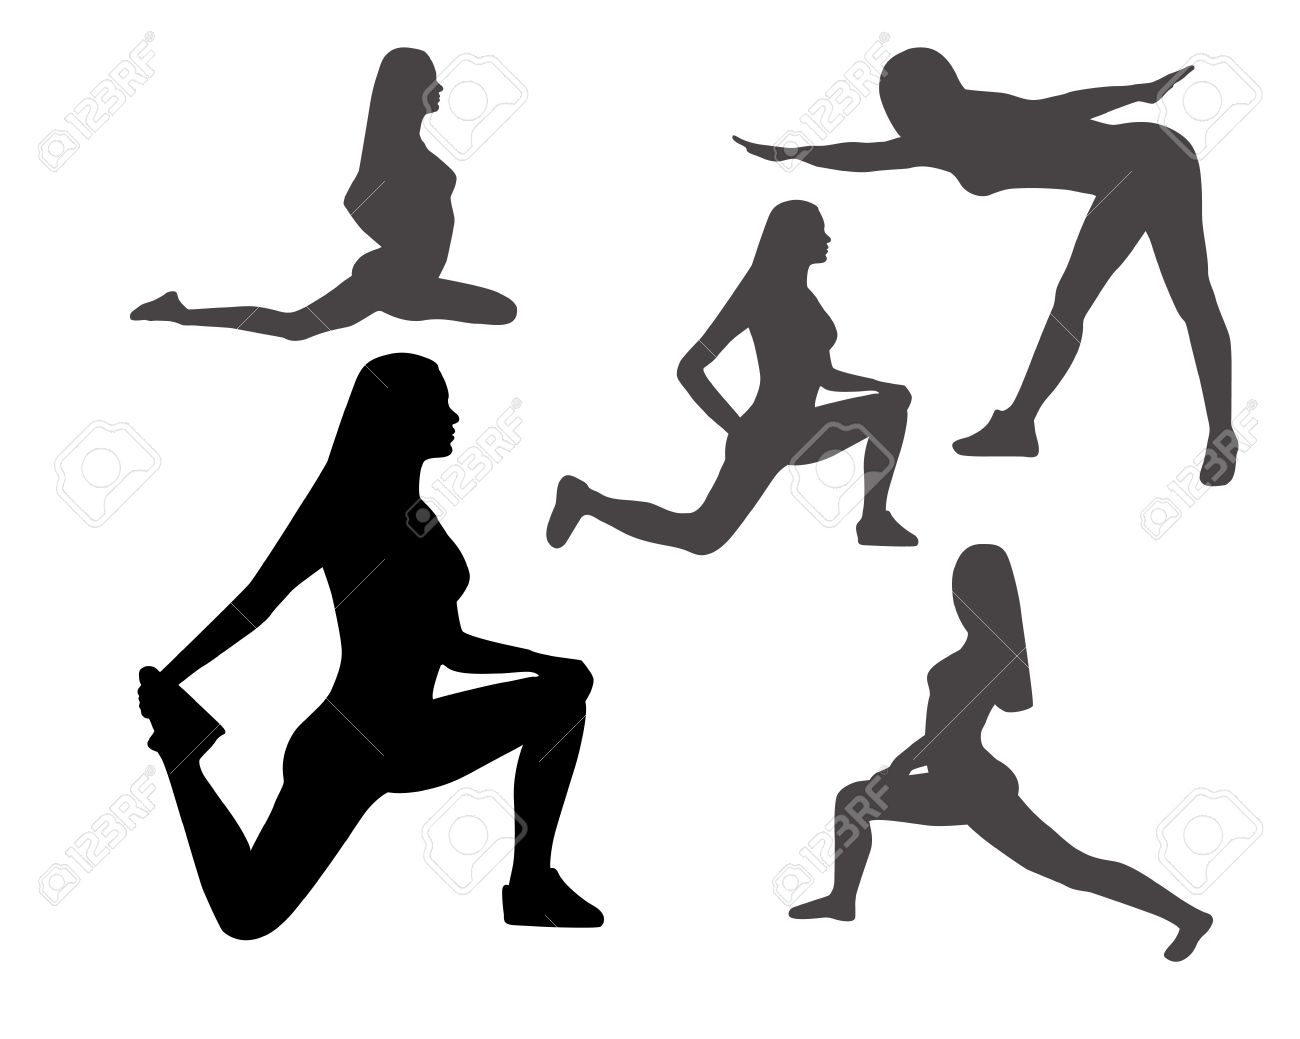 Black and grey silhouettes of women in yoga poses and sport exercises on a white background